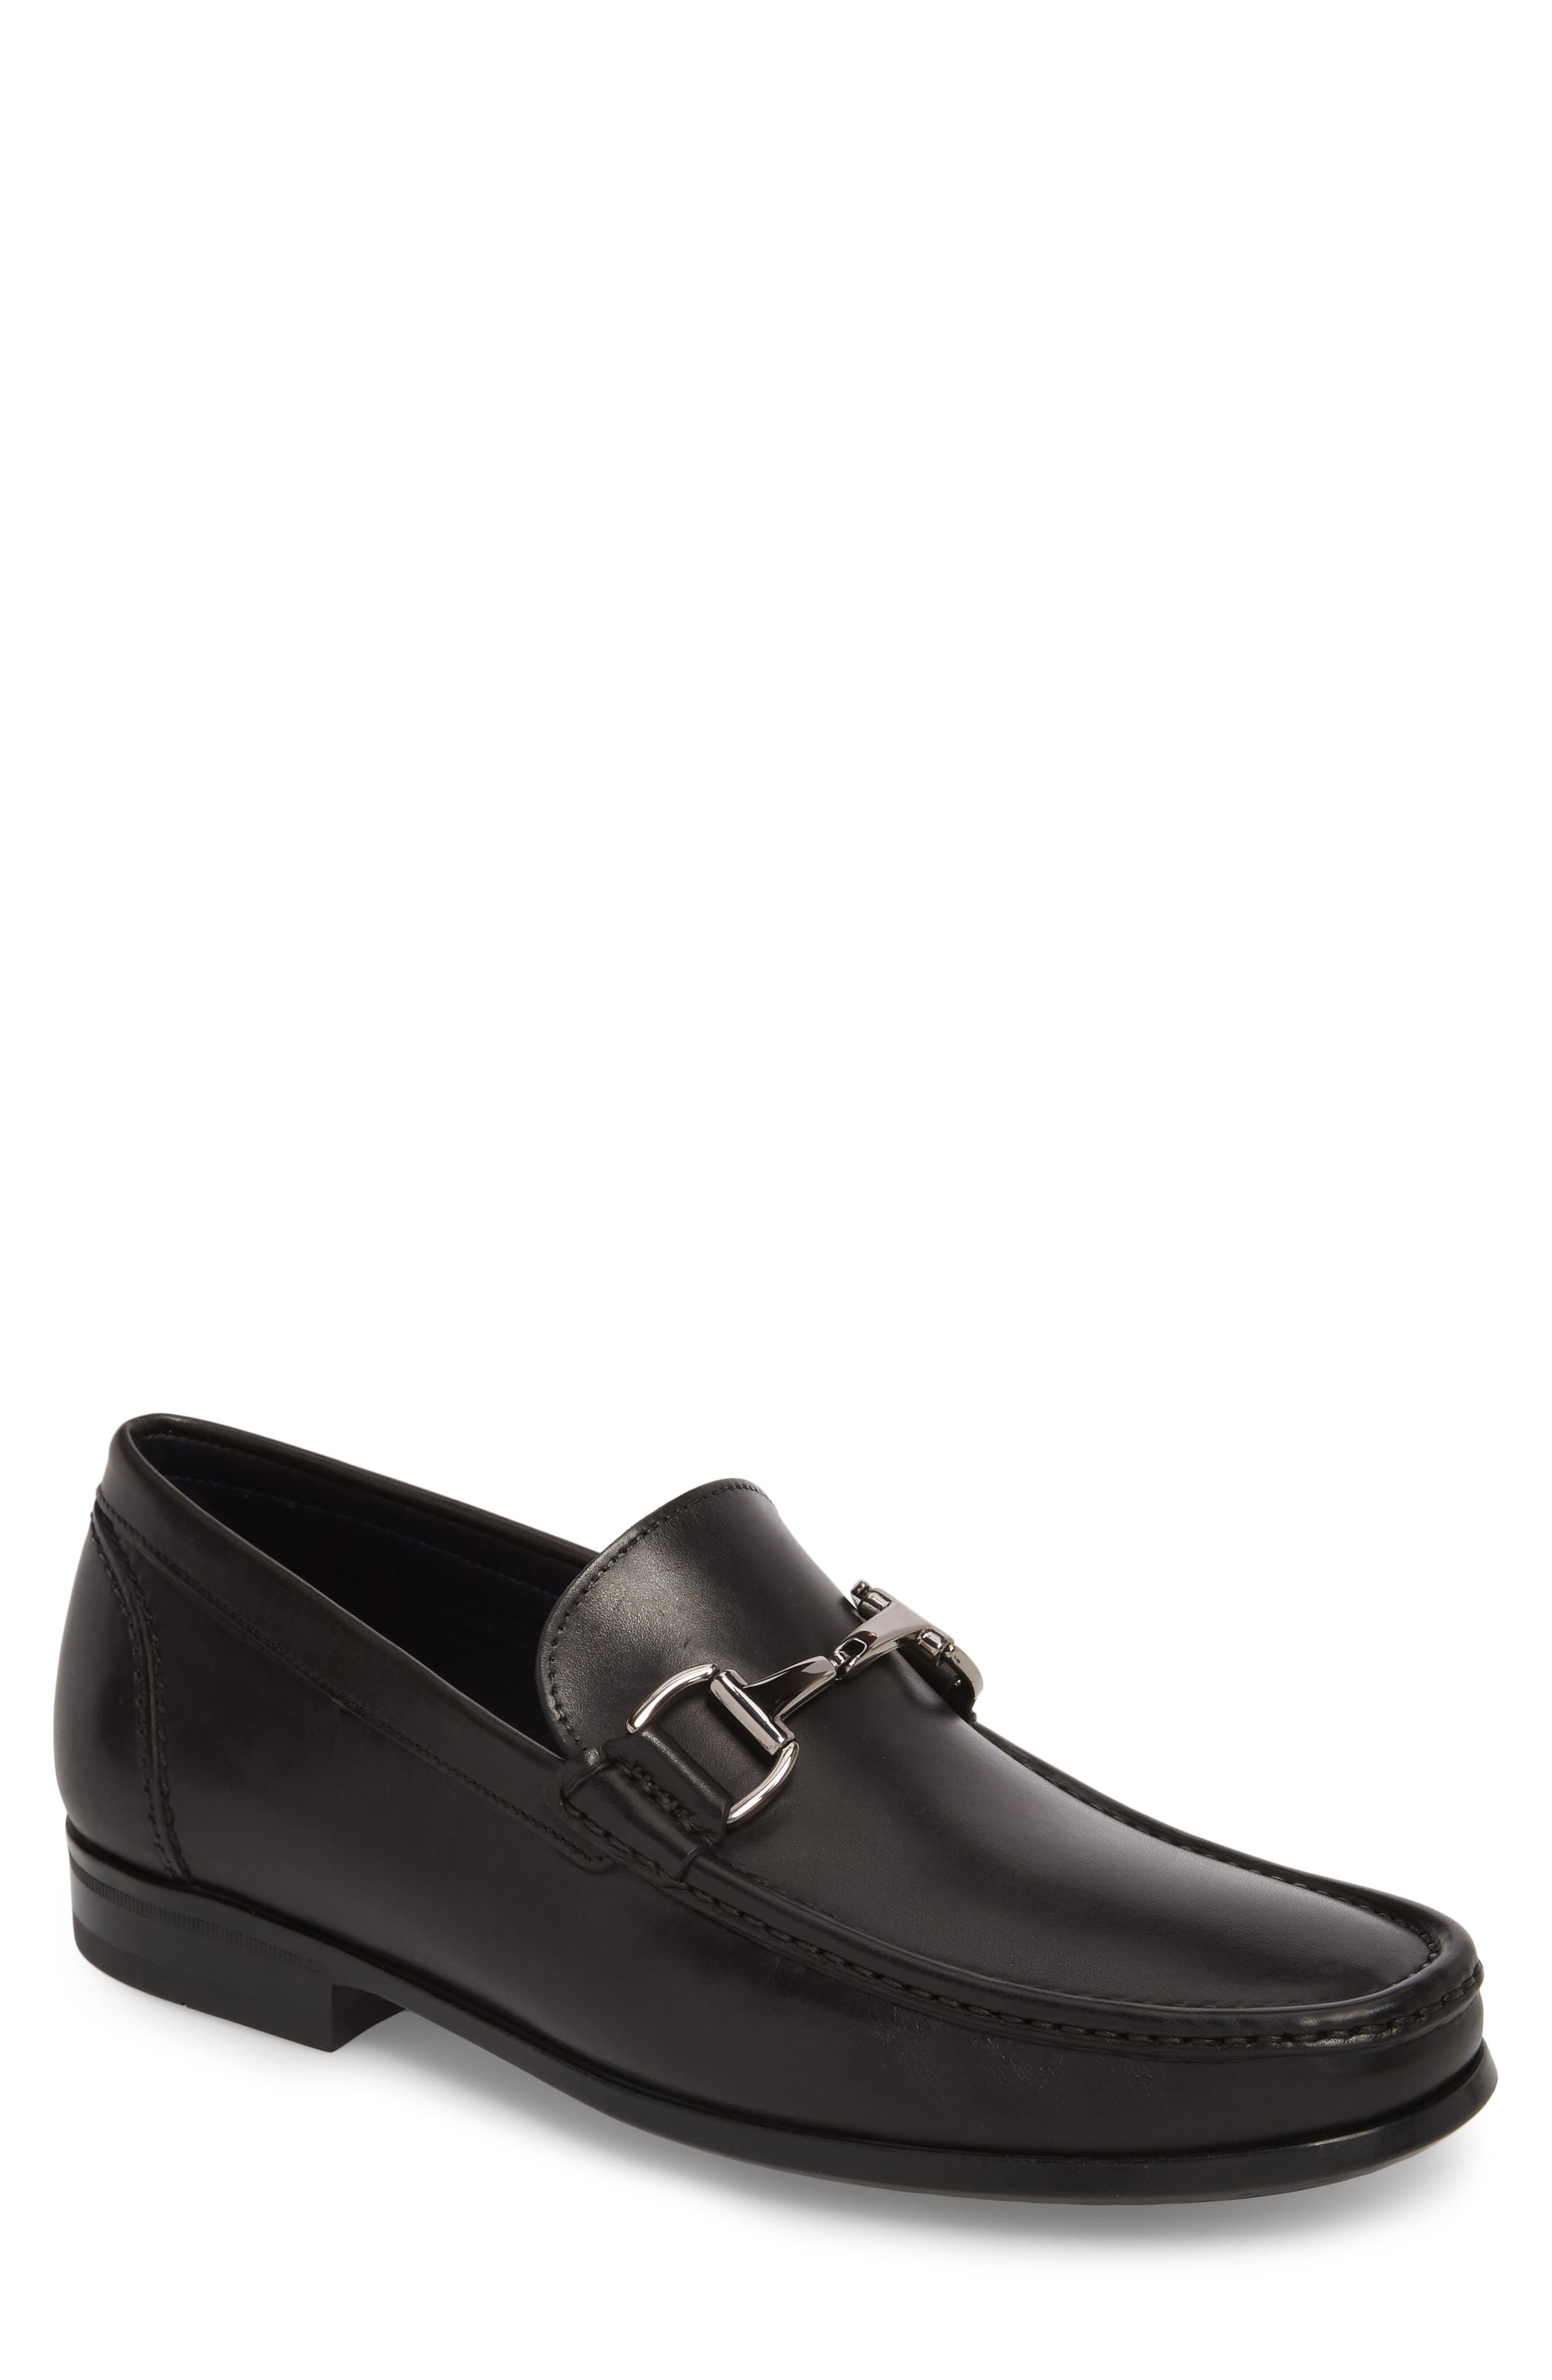 Gio Bit Loafer,                             Main thumbnail 1, color,                             001